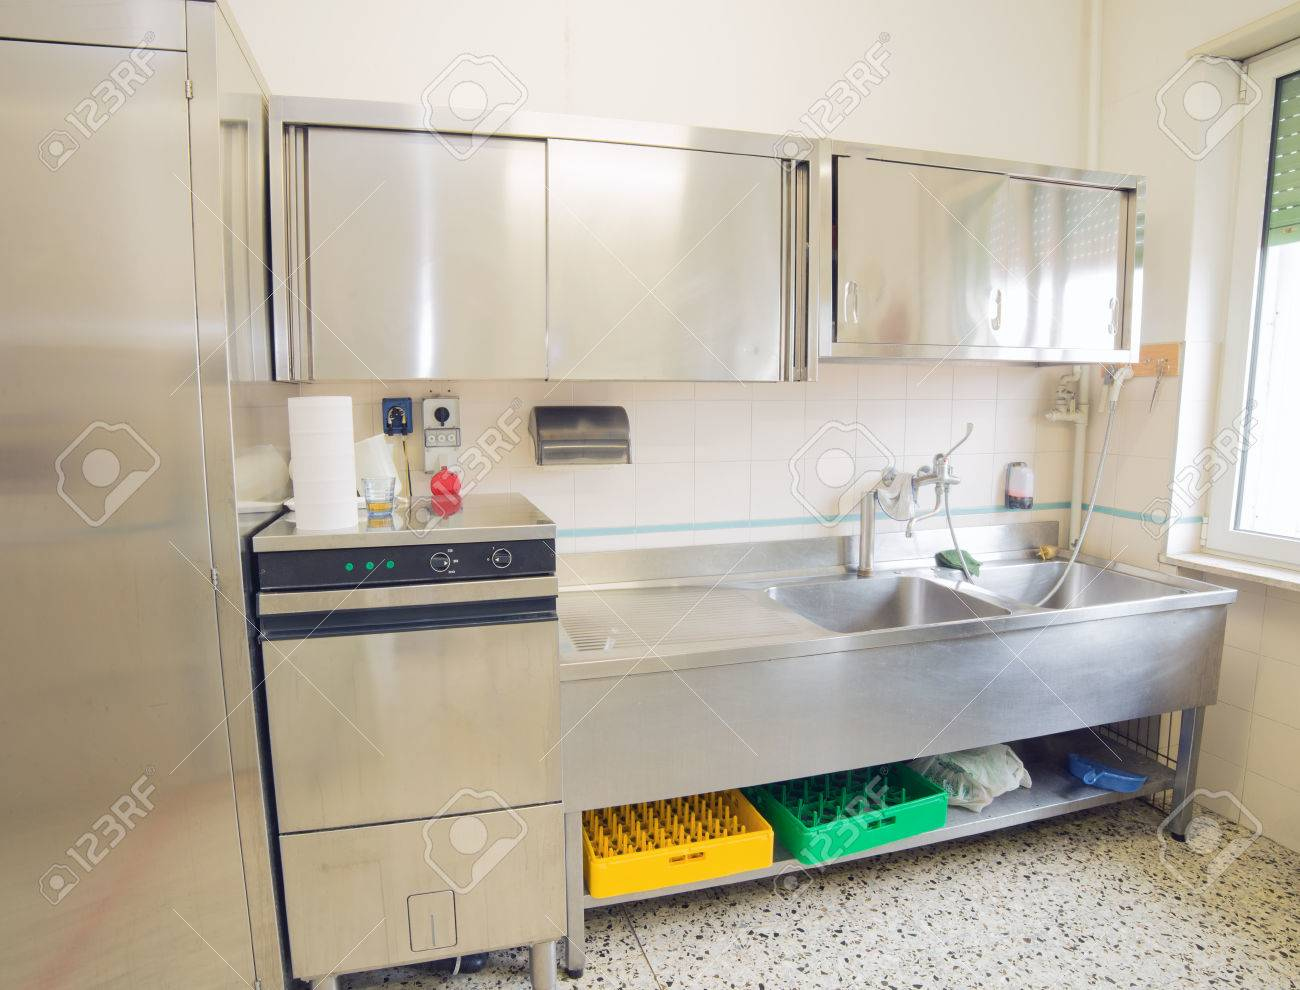 Large Industrial Kitchen With Refrigerator Dishwasher And Sink